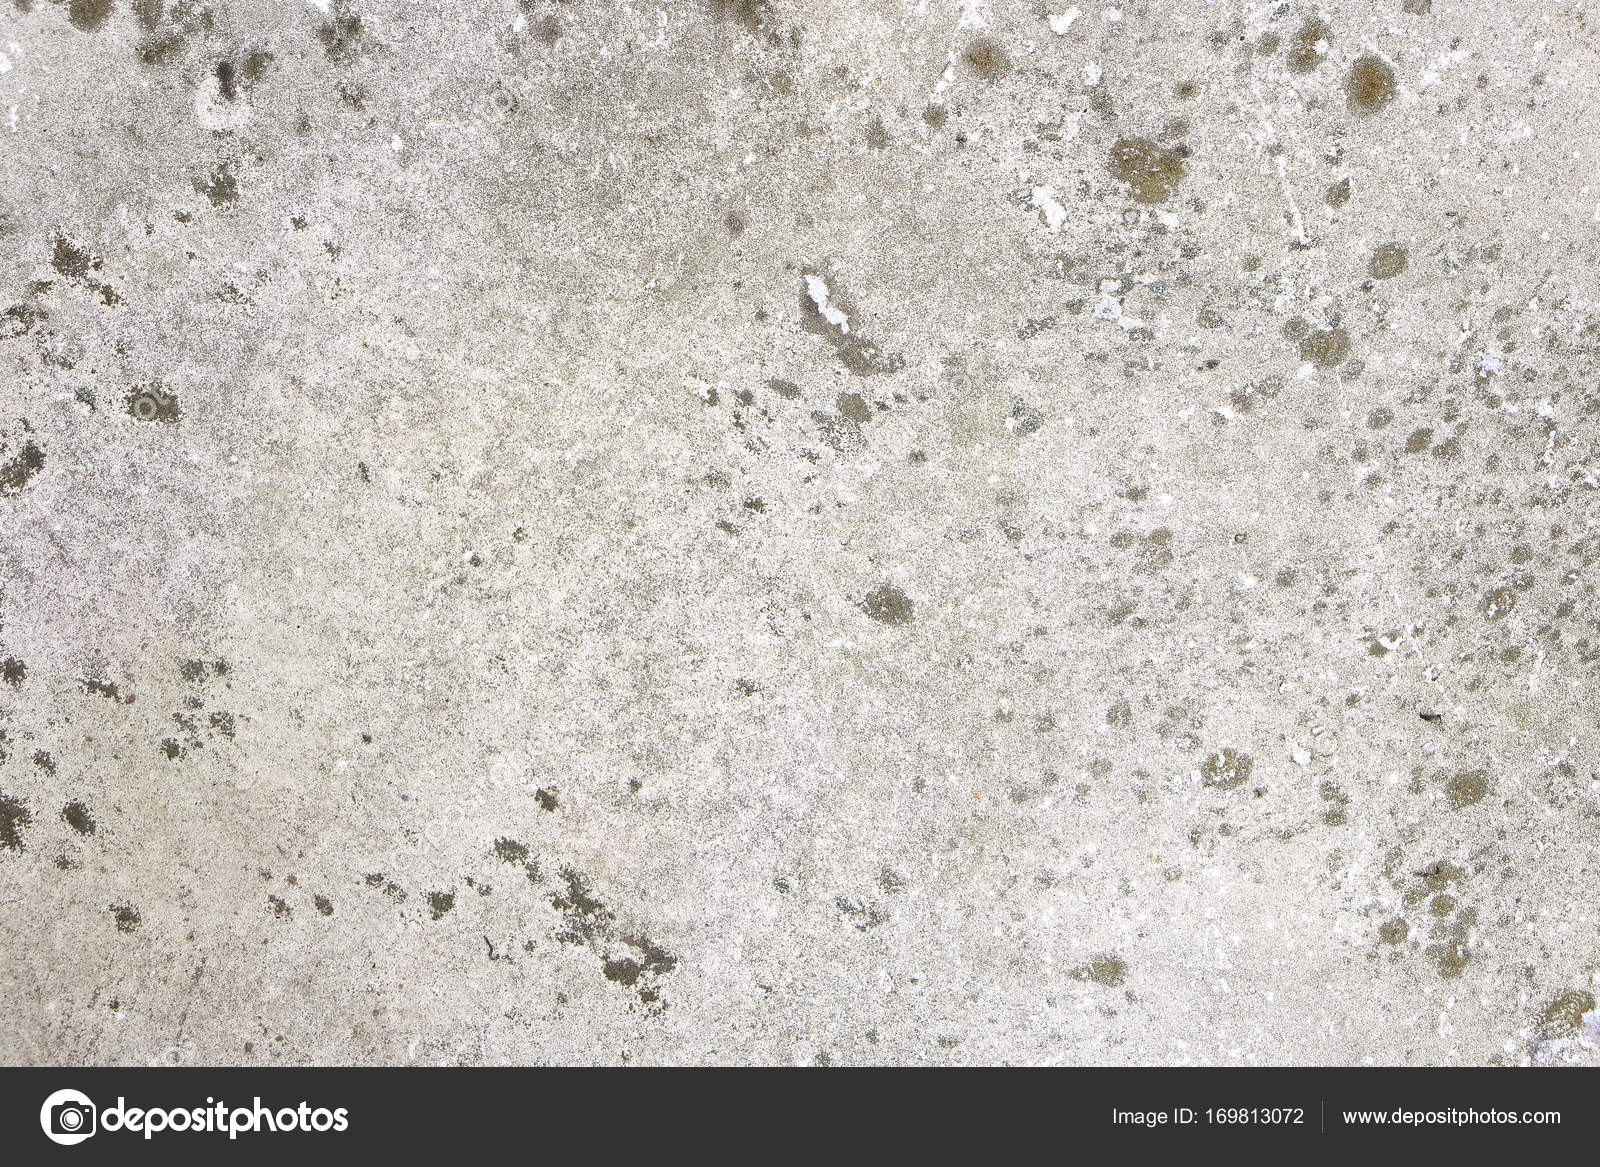 Background Of Light Grey Stone Tile With Some Black Moss Photo By Ravennk